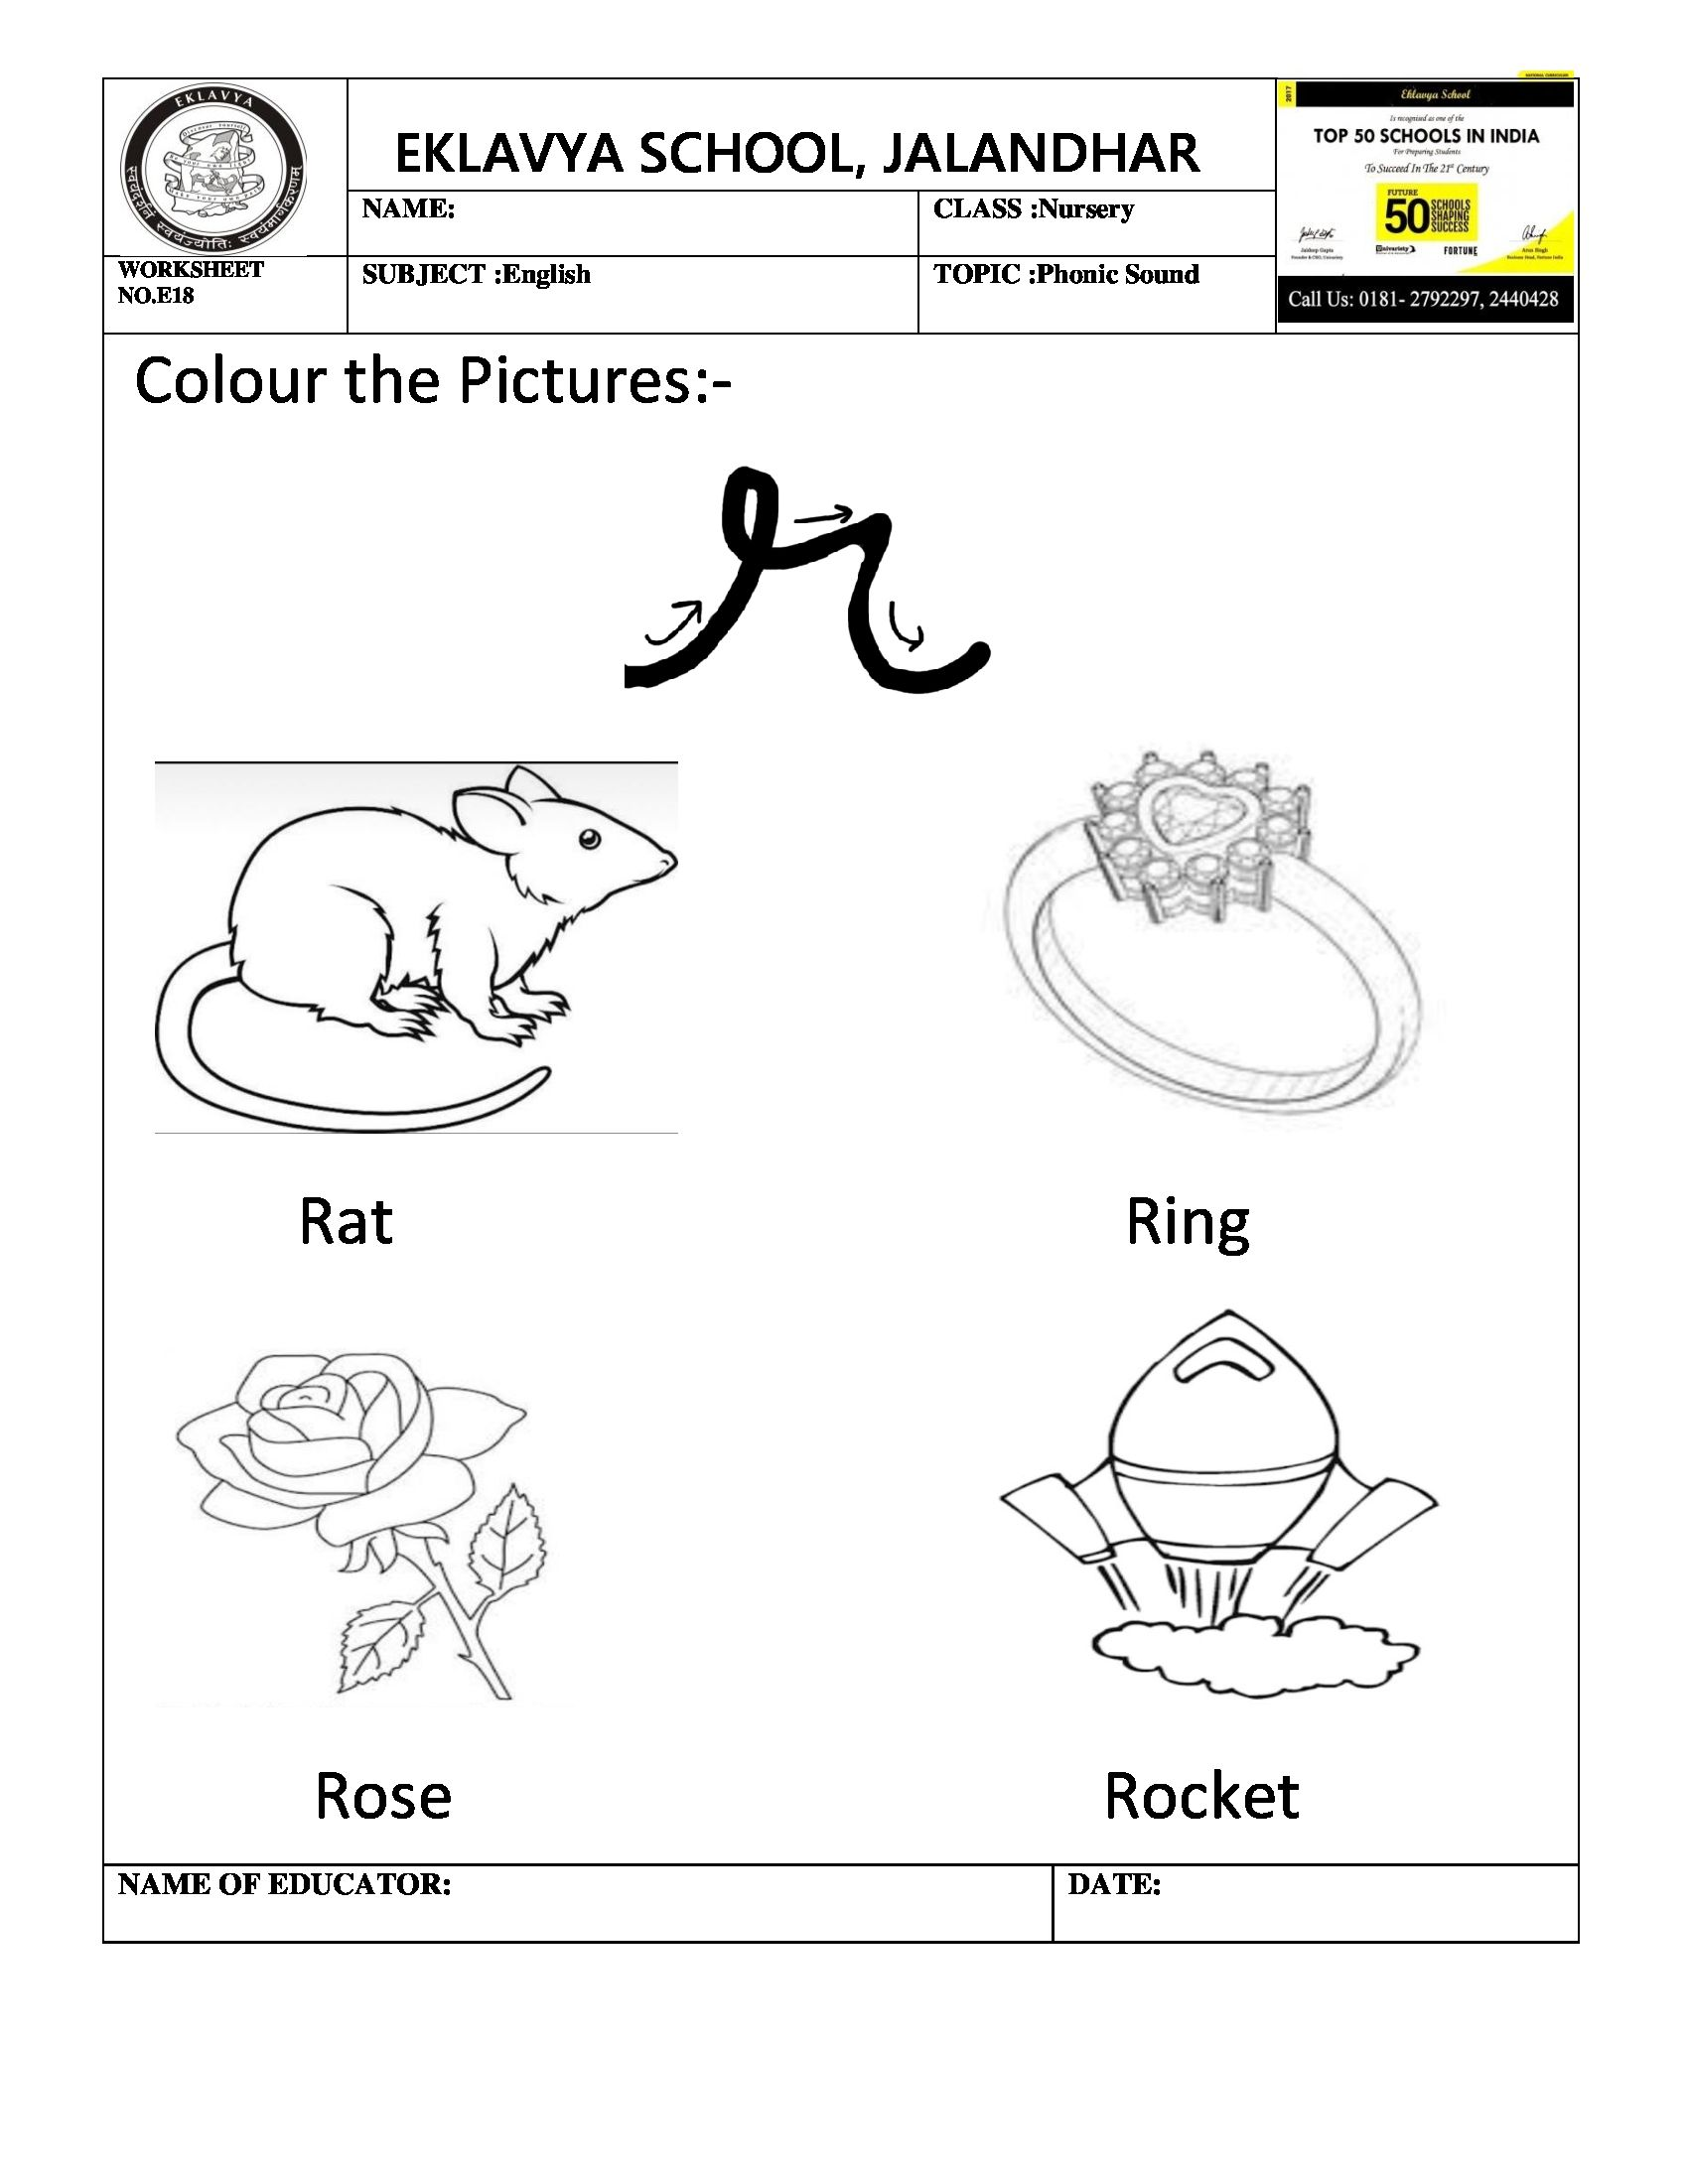 Worksheet On Phonic Sound R